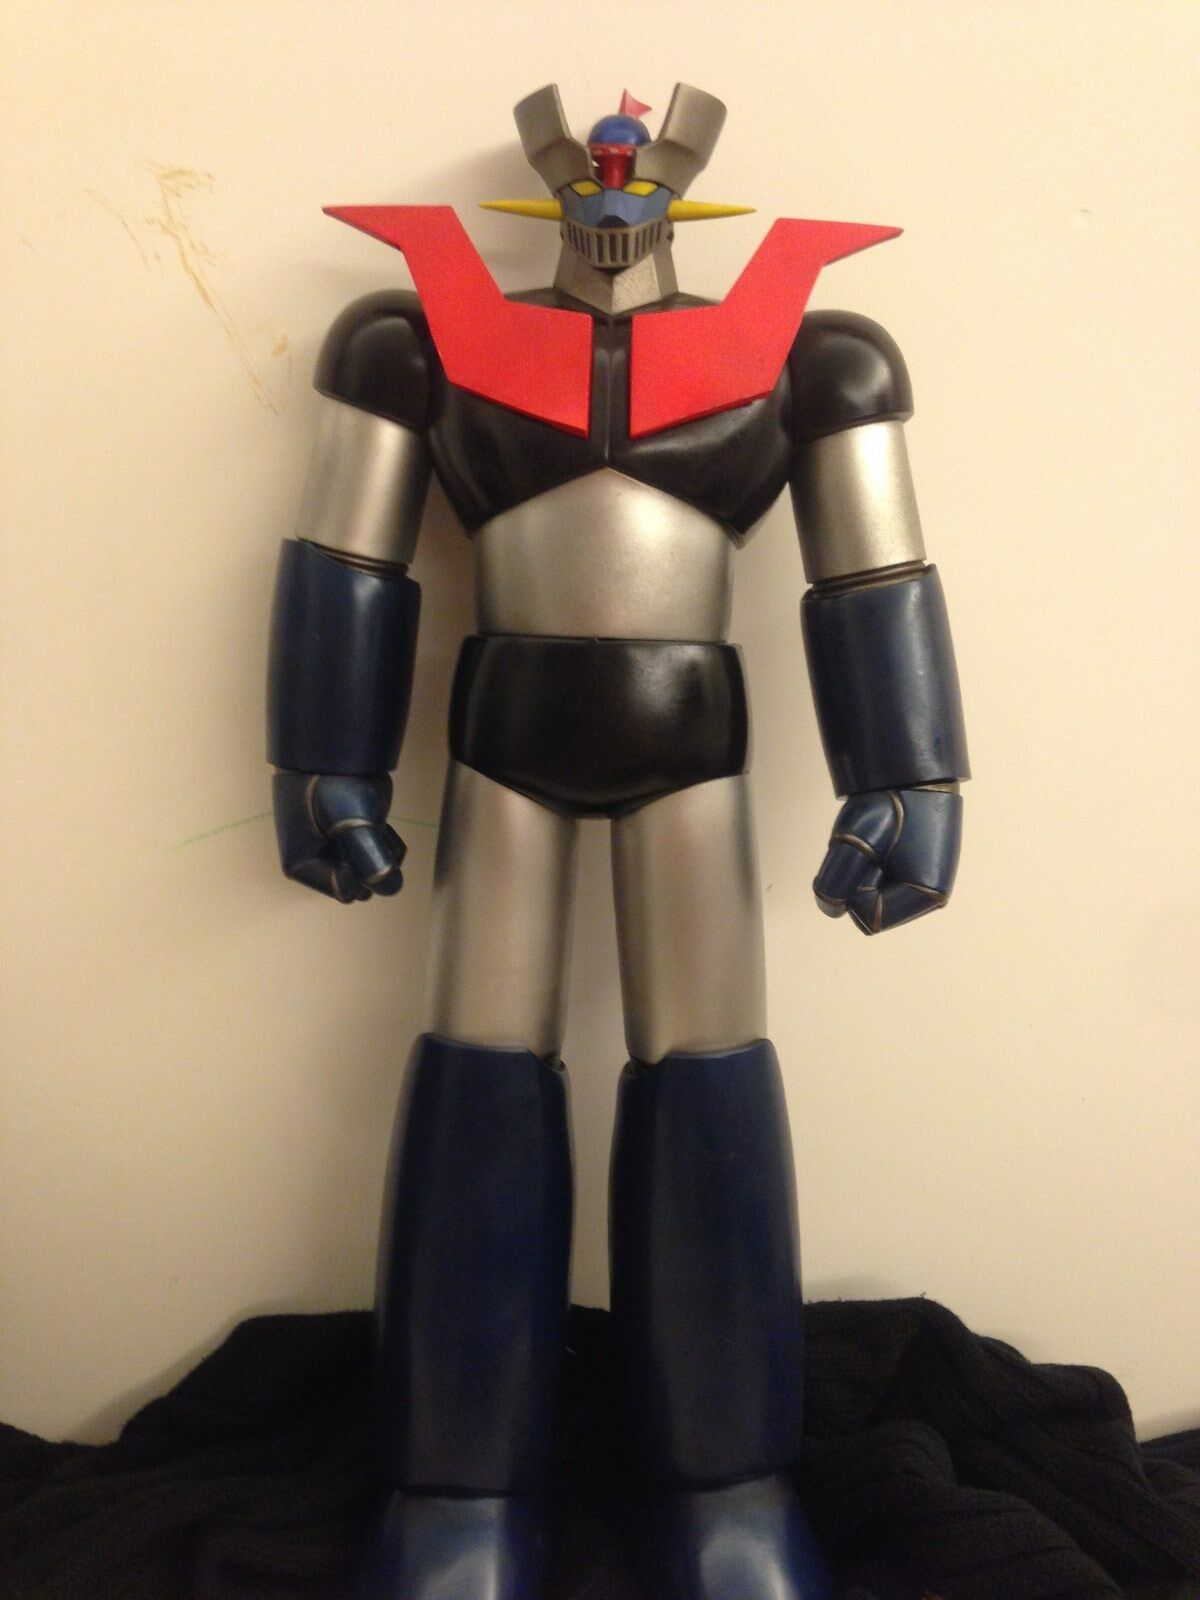 Jumbo Möbel Discount Jumbo Model Kit Kaiyodo Z Mega Soft Vinyl Big 50 Cm Color Mazinger